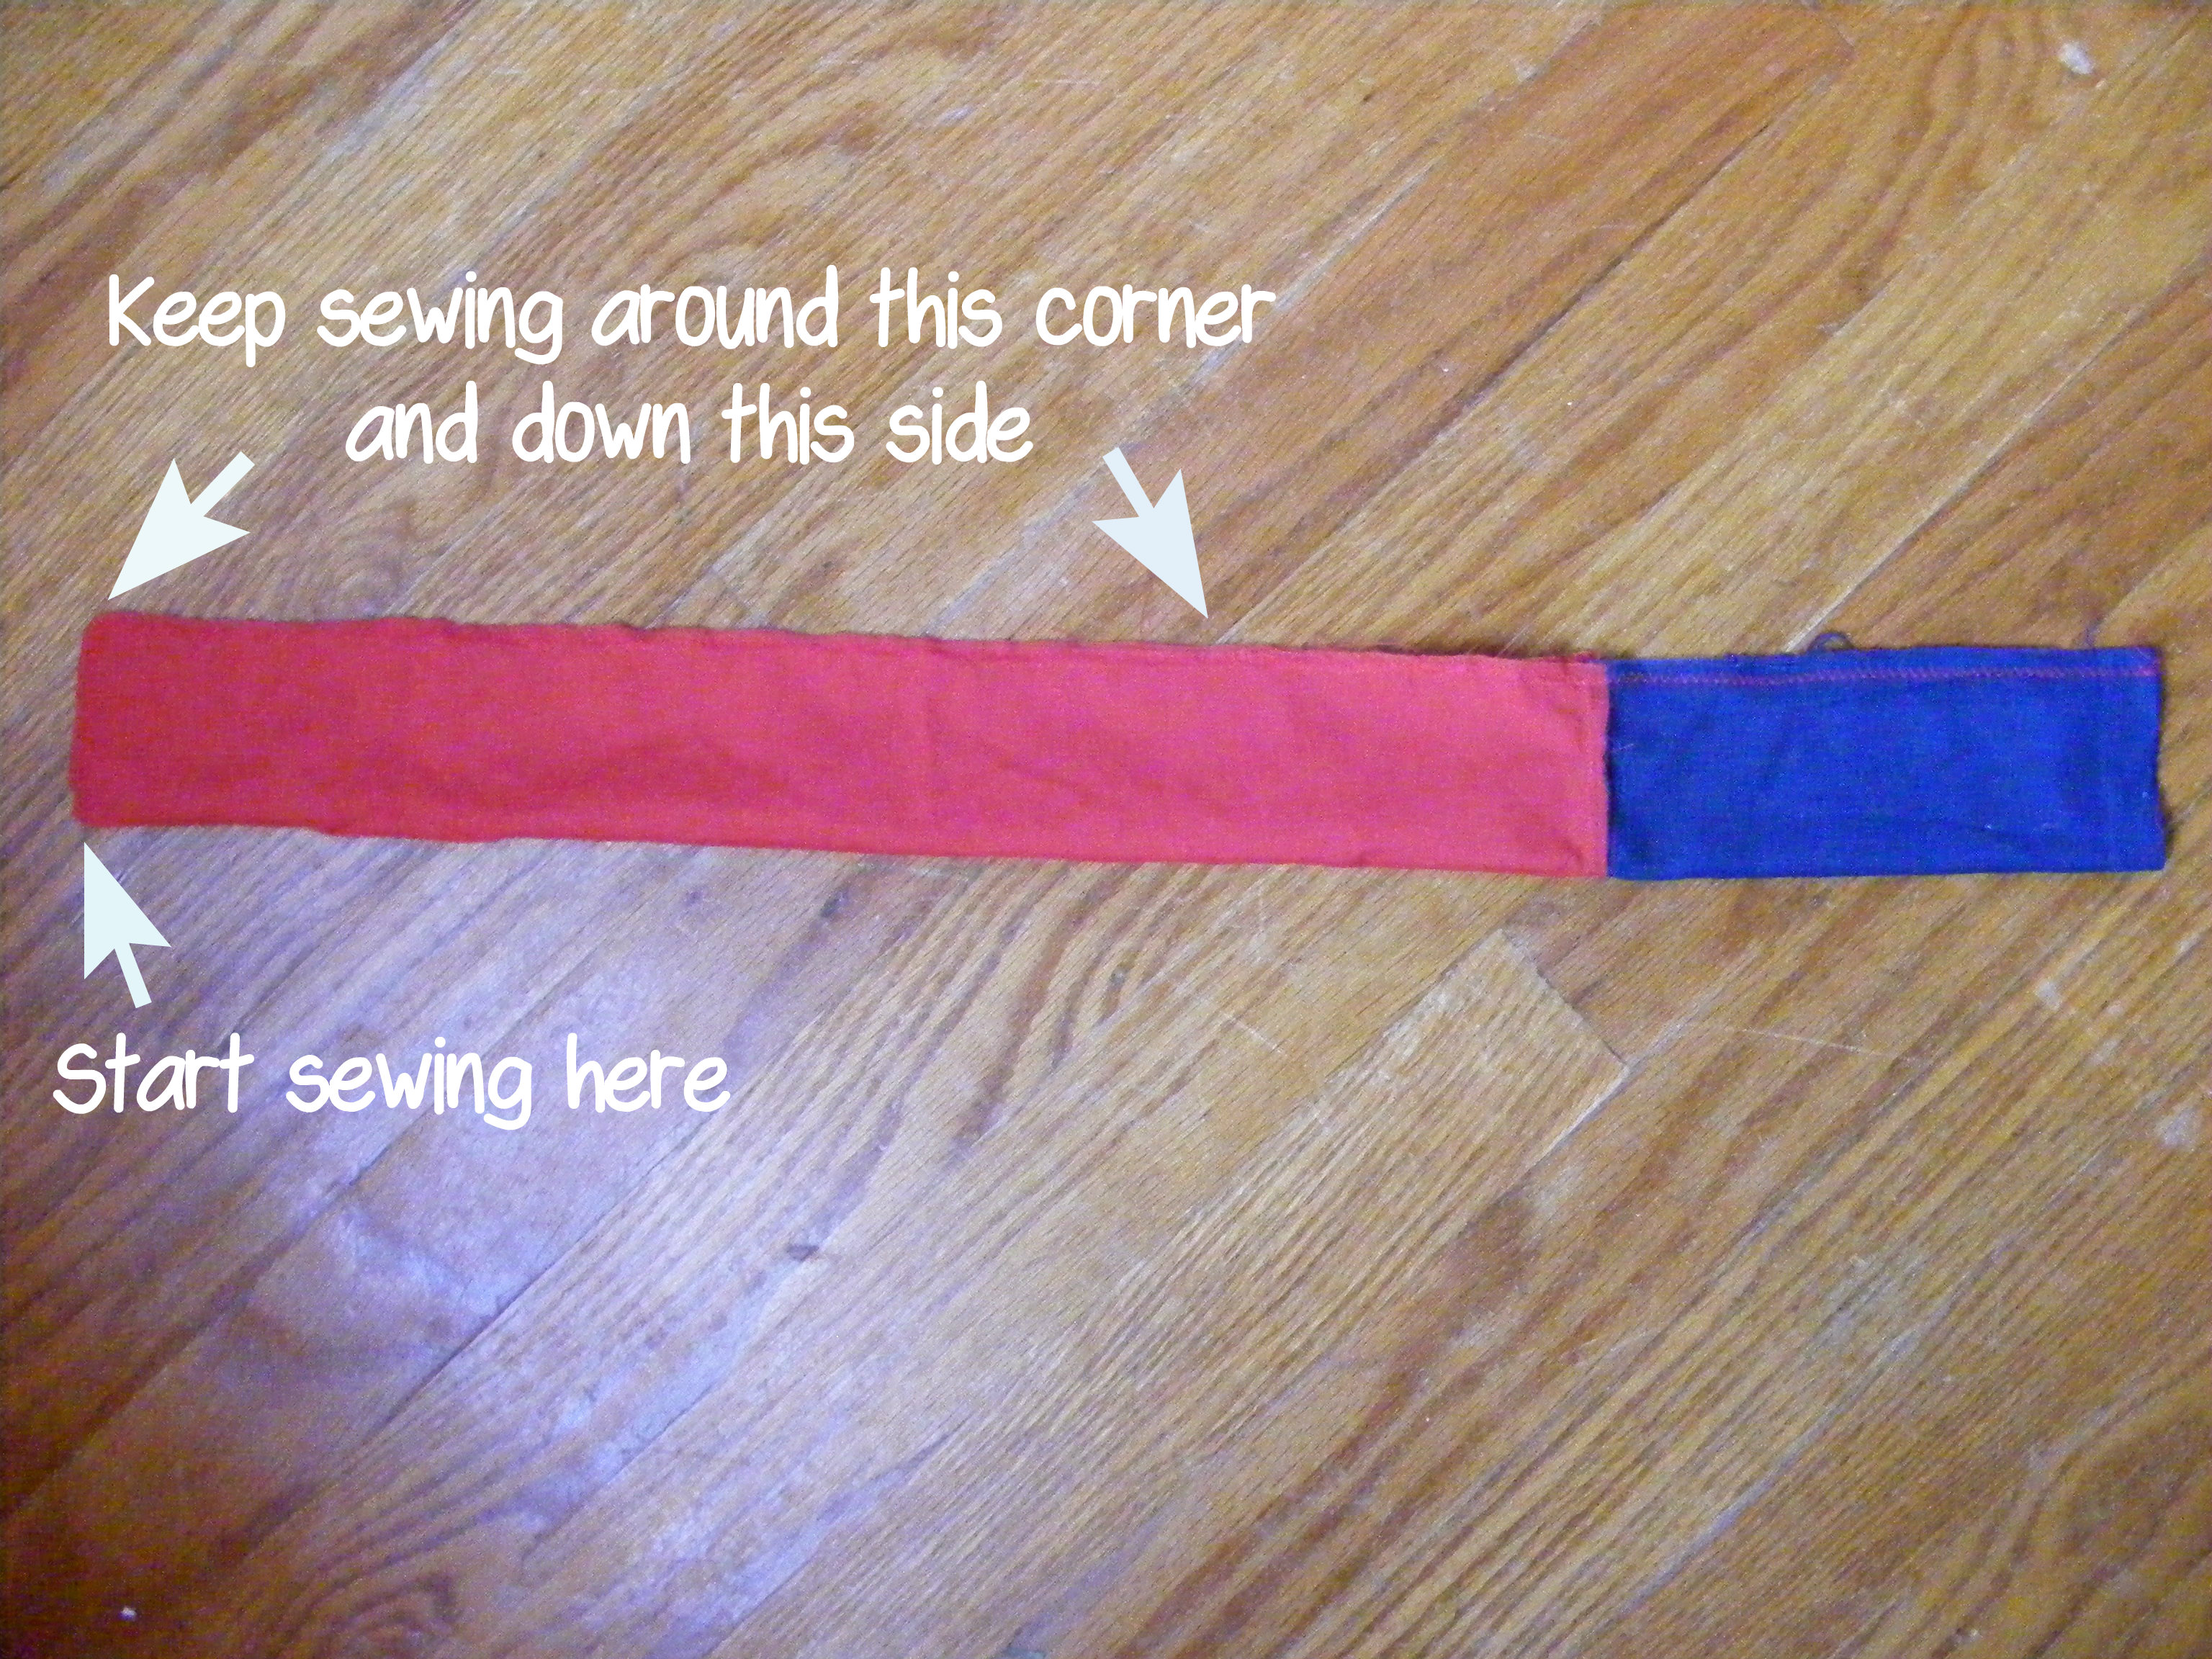 sewing body of light saber